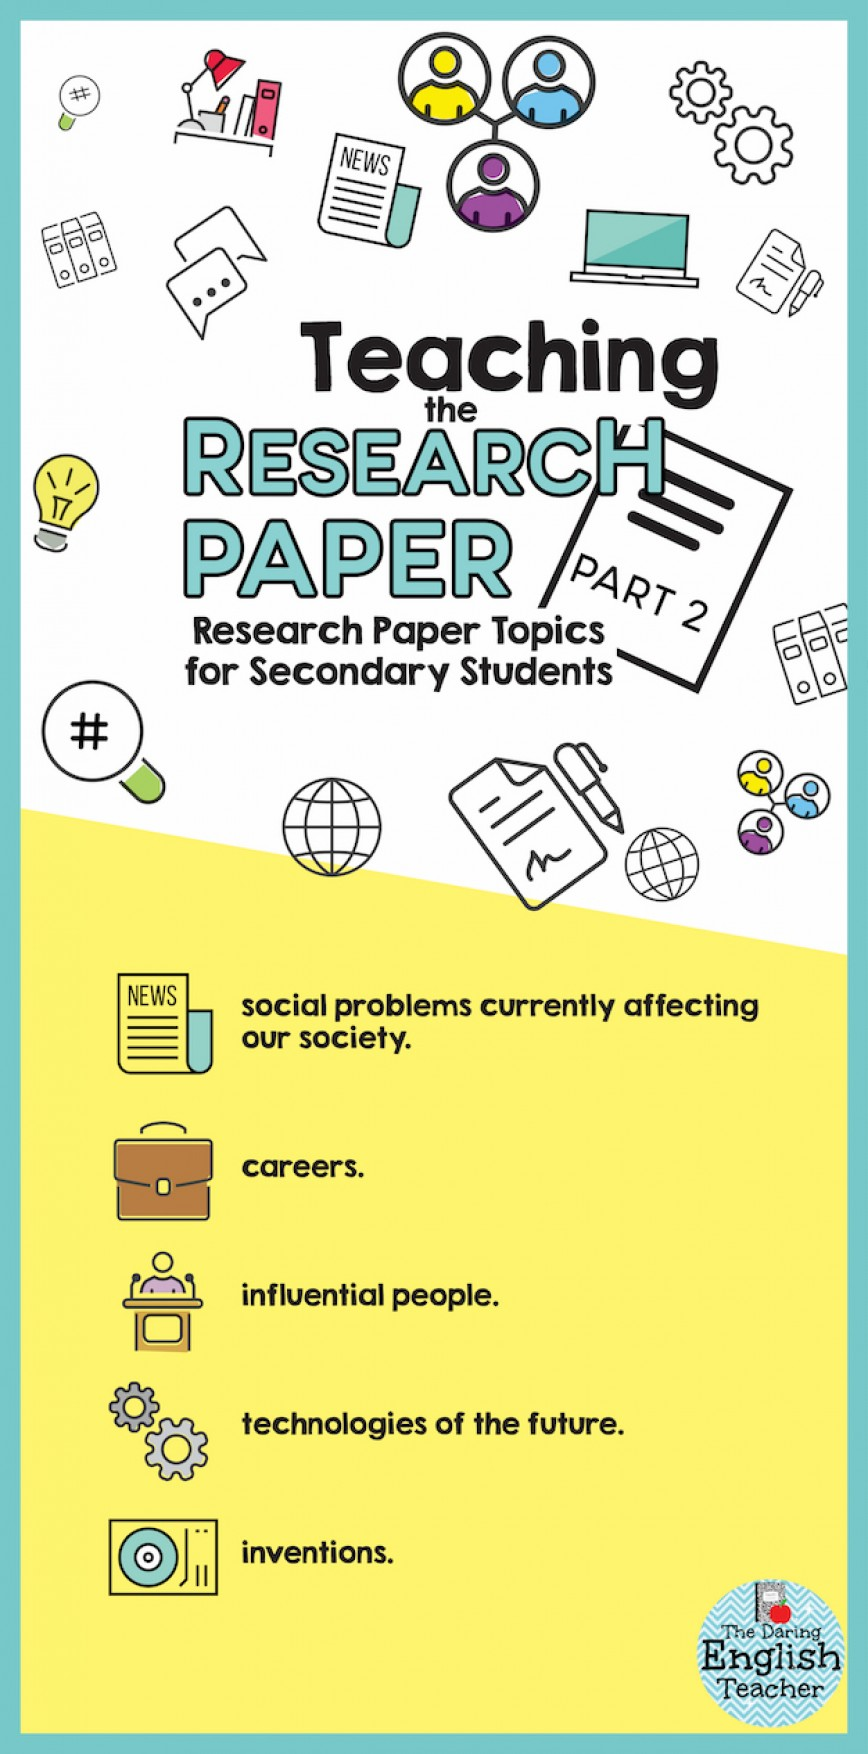 020 Infographic2bp22b2 Research Paper Topic For Unusual A Topics In Developmental Psychology On Education Frankenstein 868